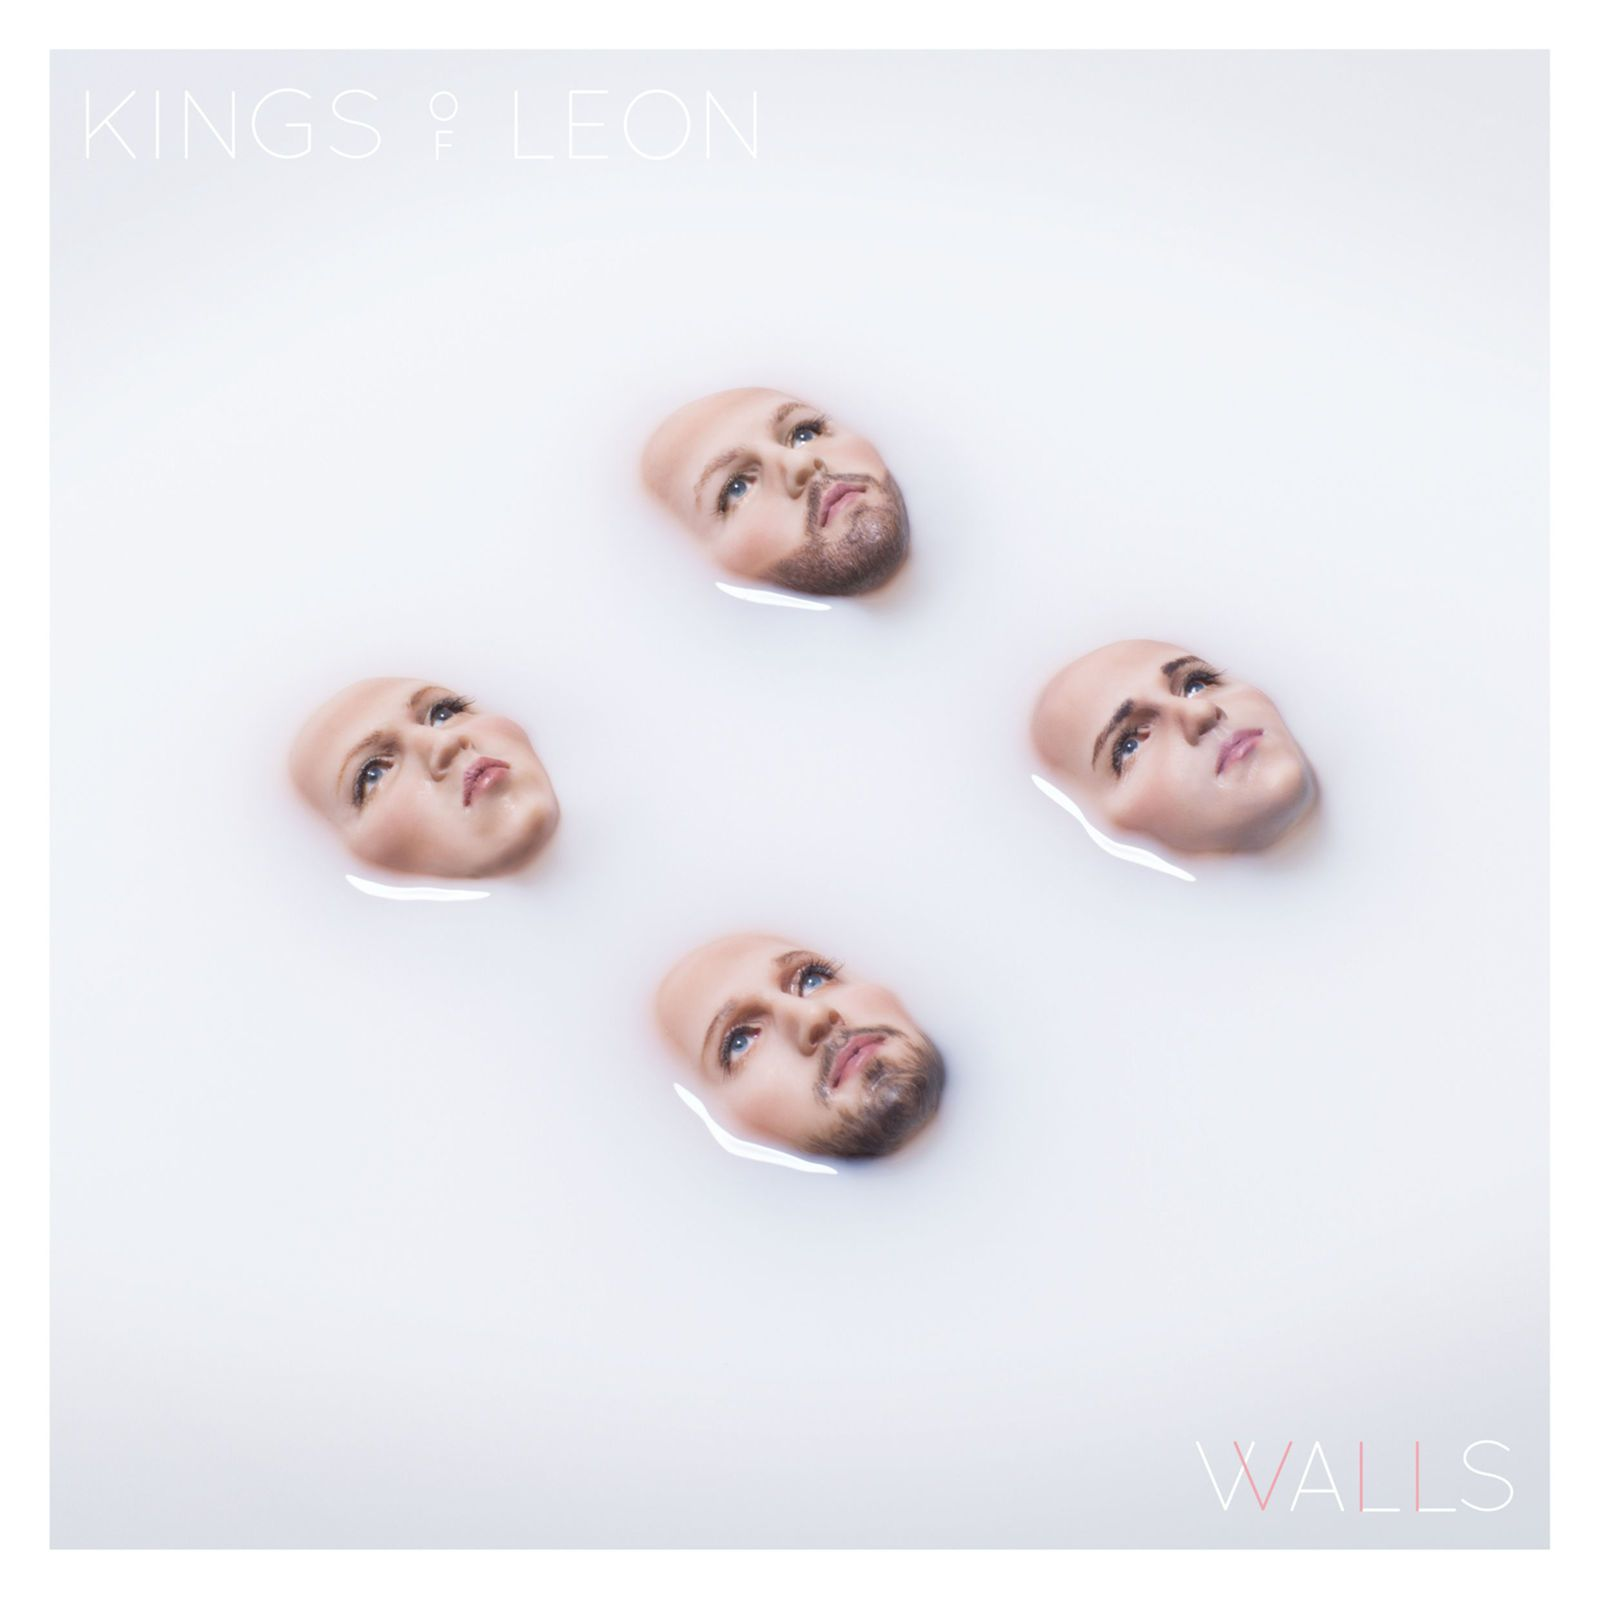 KINGS OF LEON - Walls (2016)